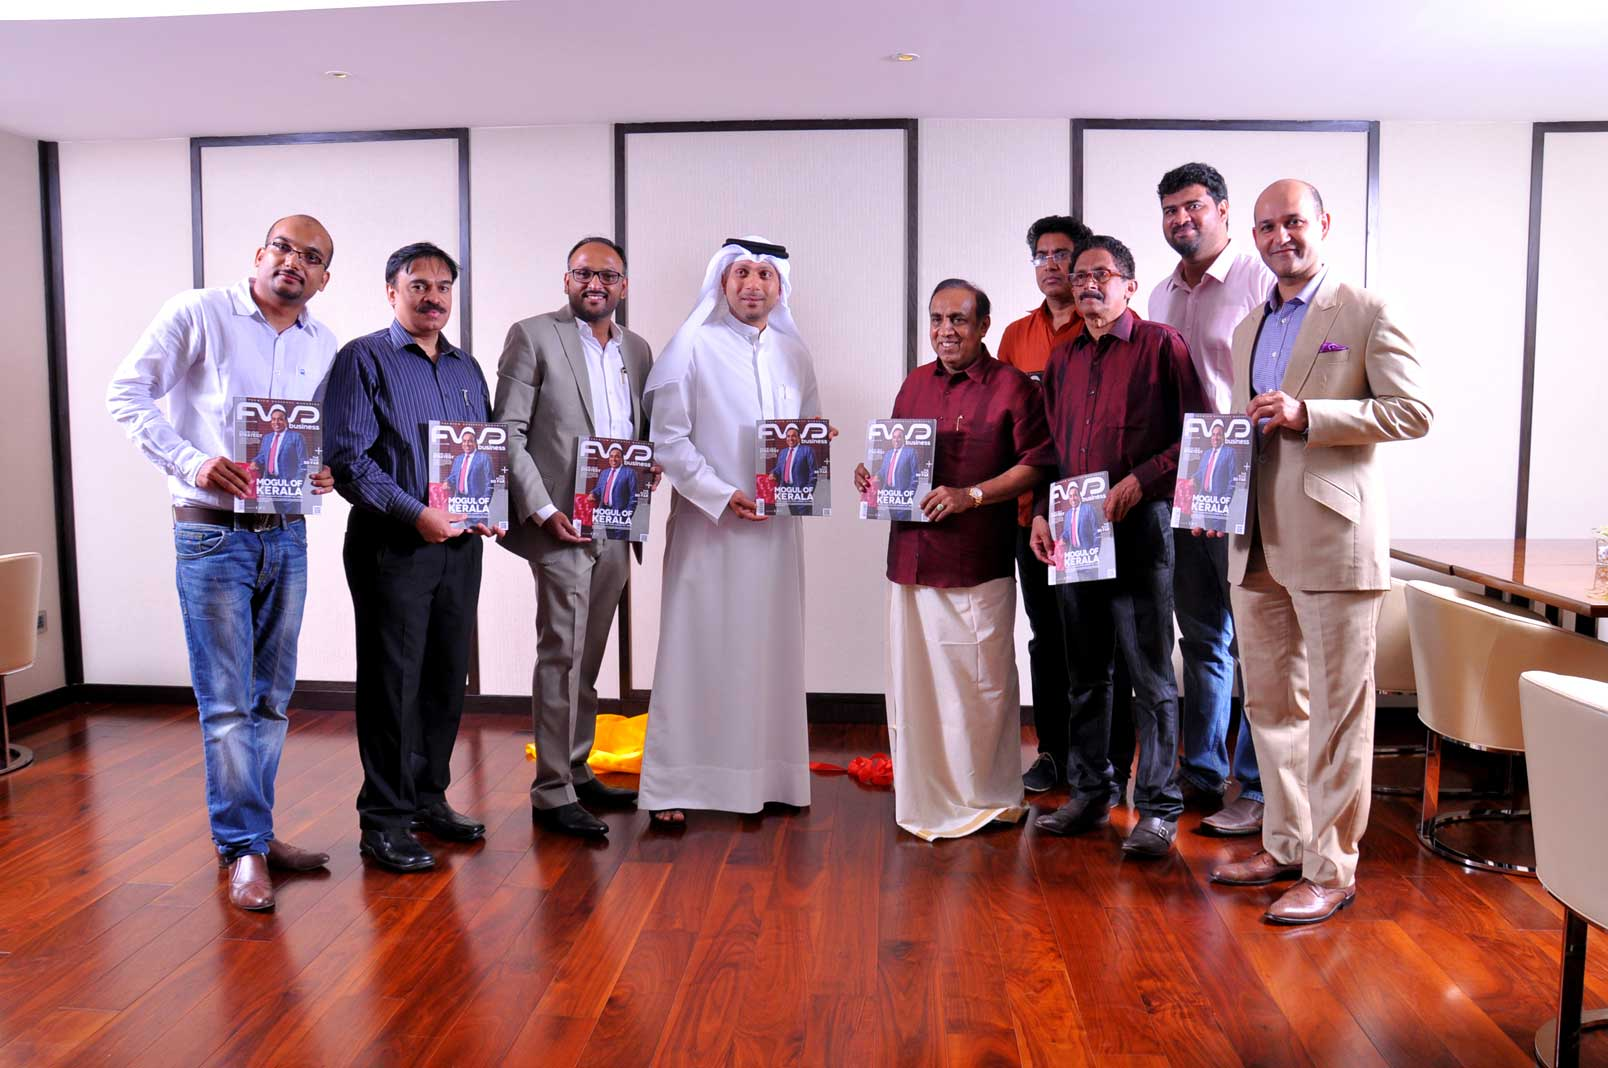 FWD business magazine September issue launching